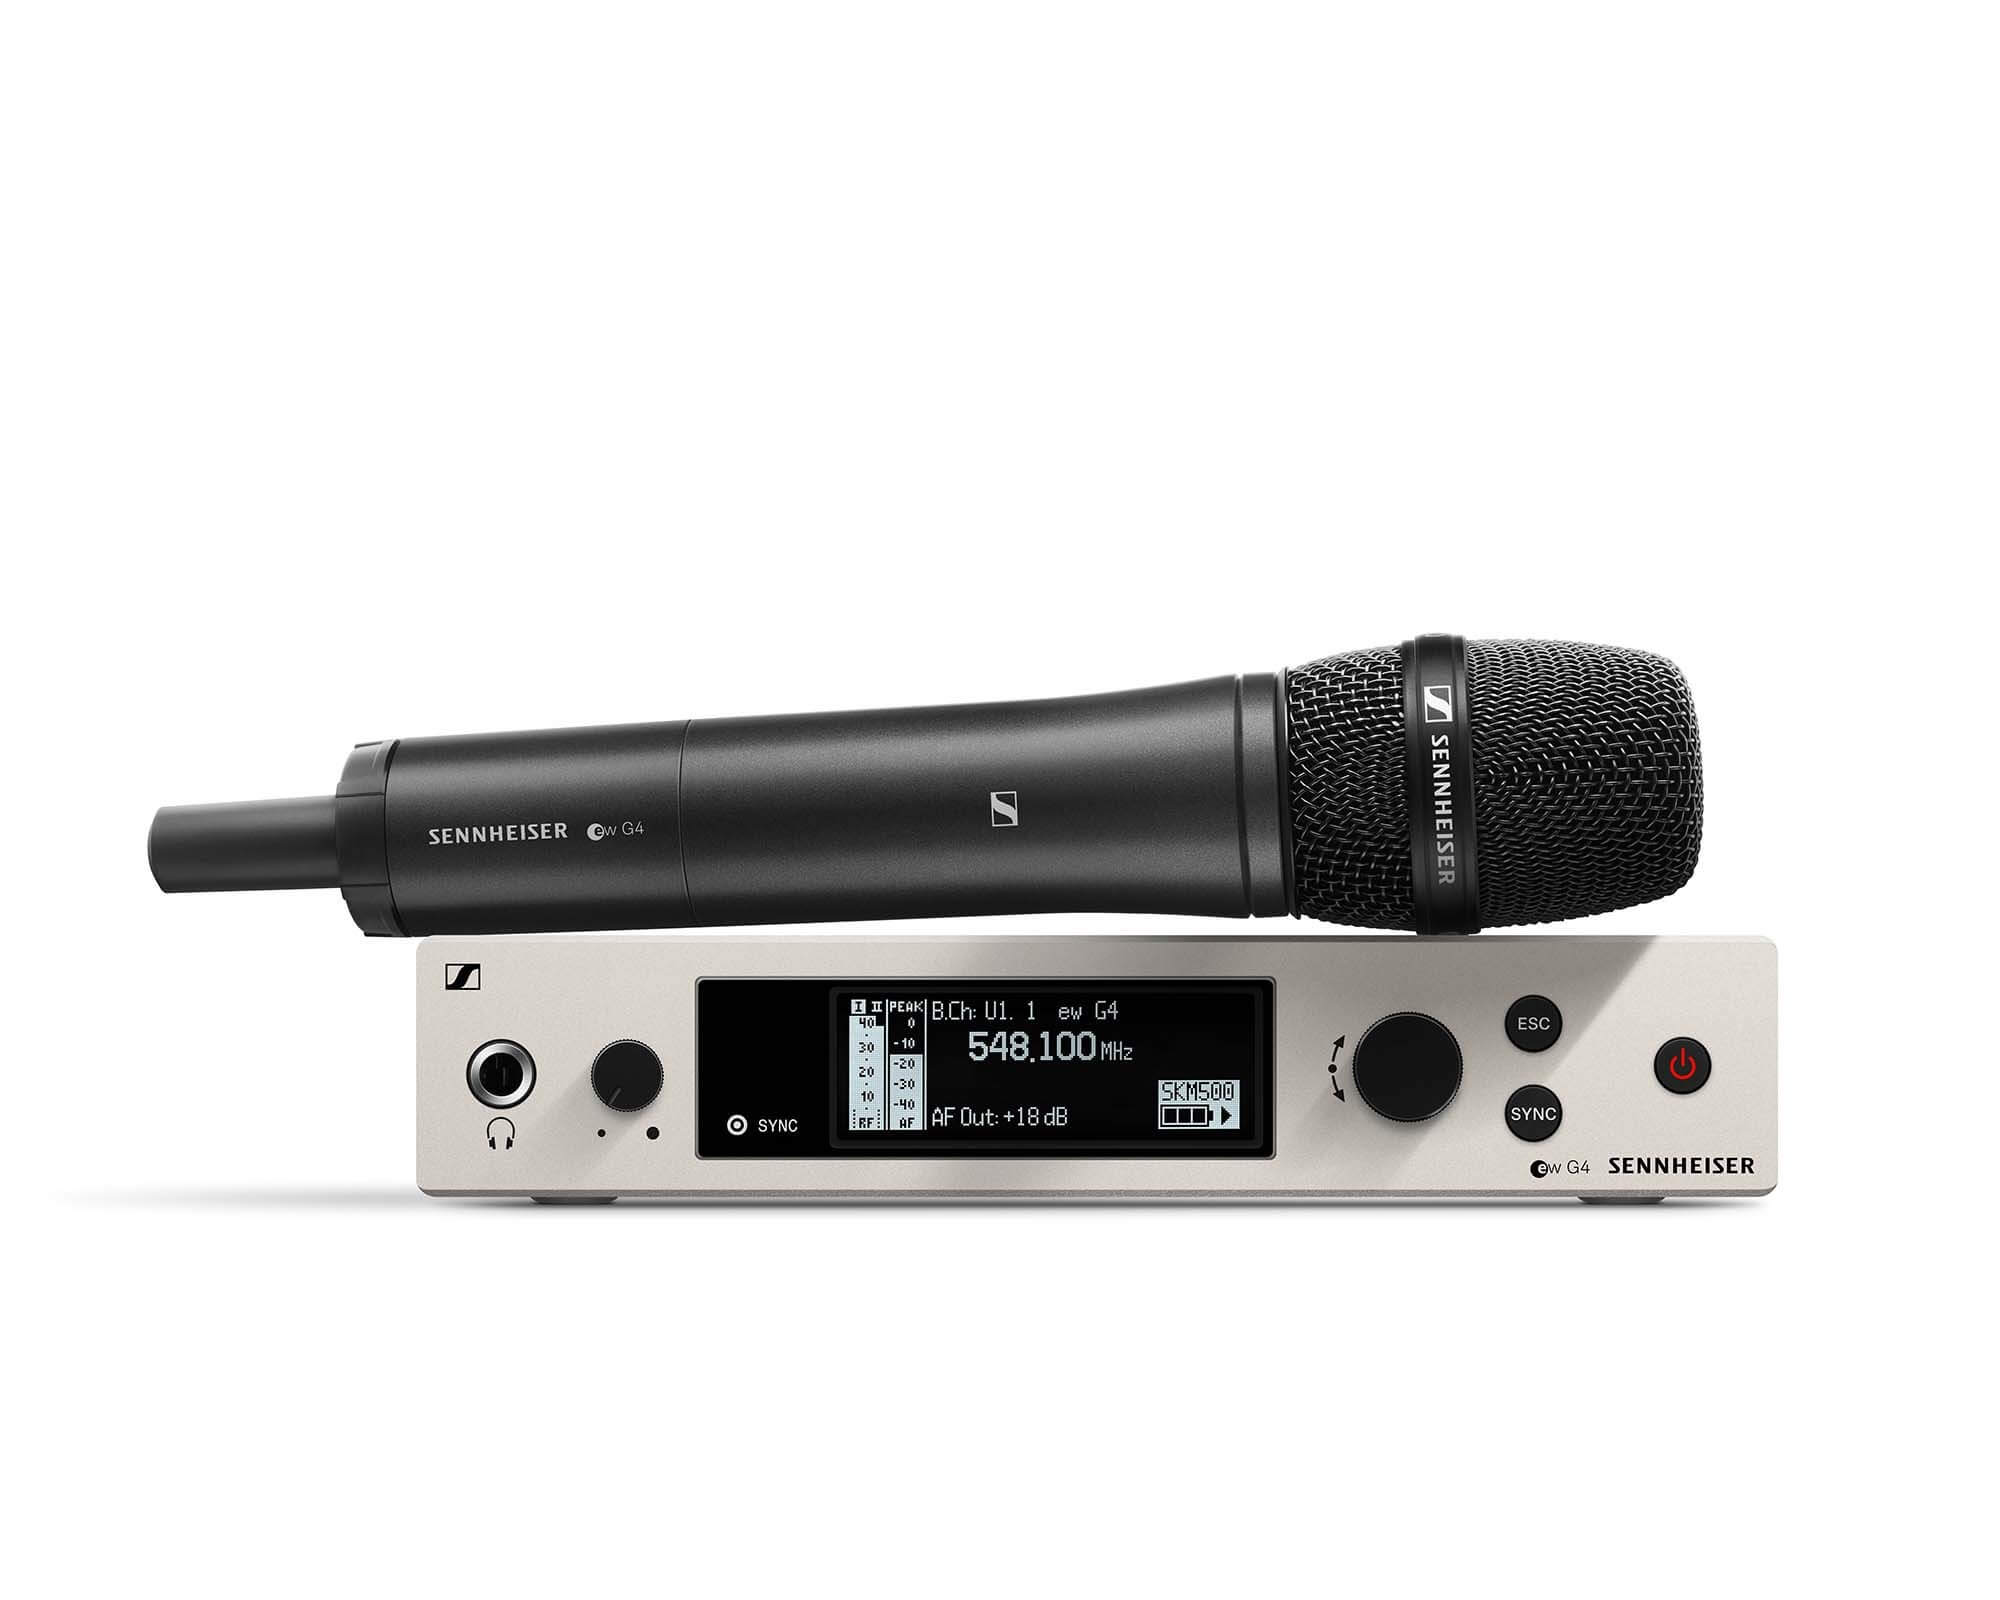 Sennheiser EW500 G4 Hire - Fusion Sound & Light